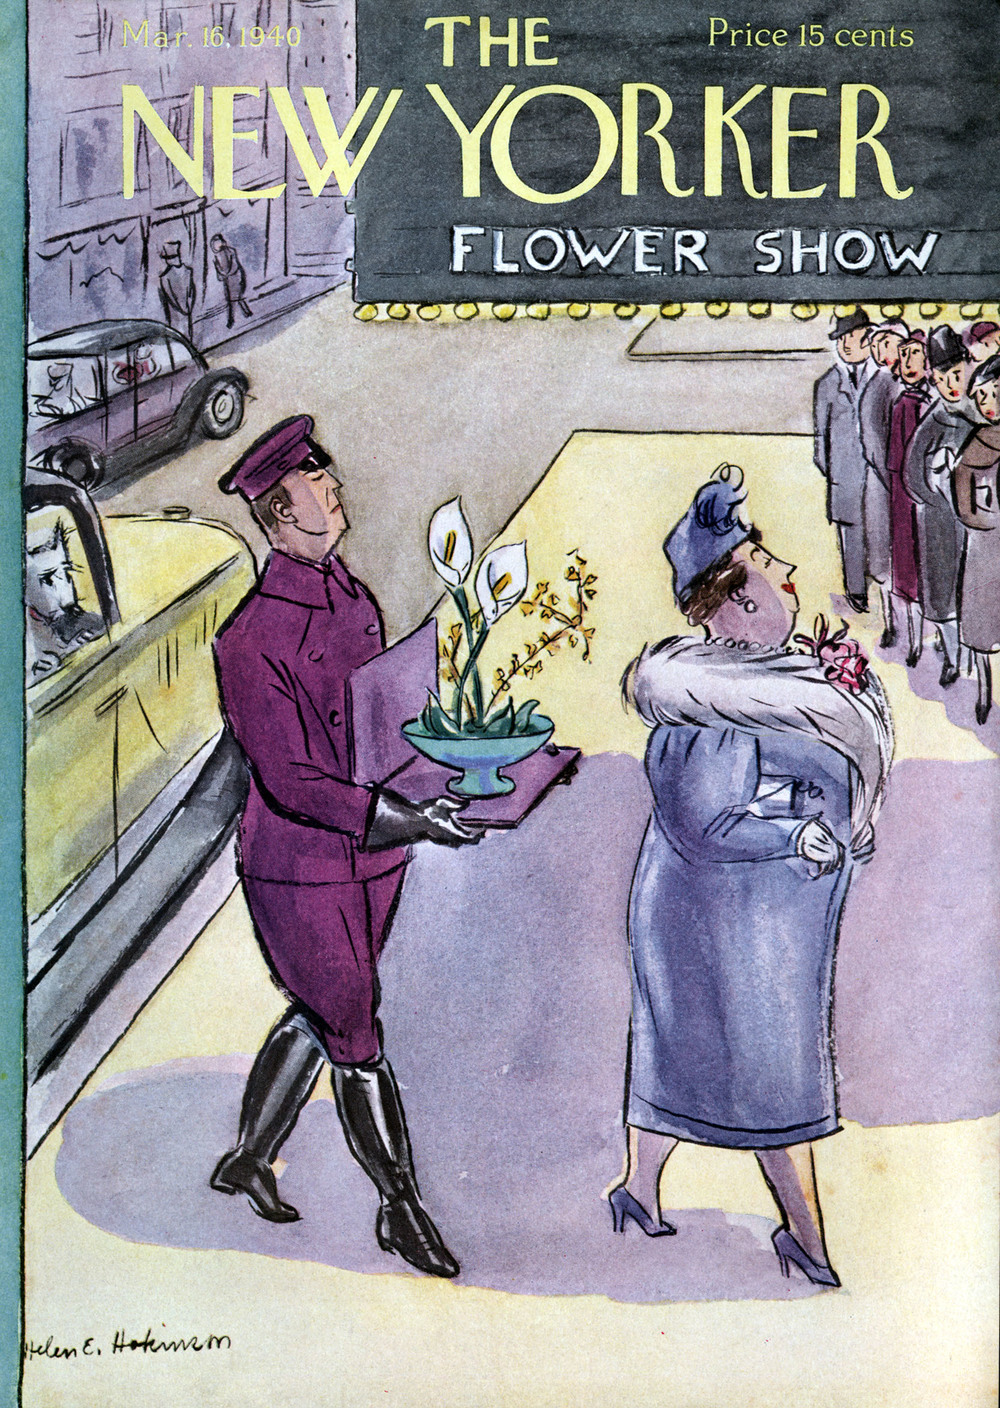 Helen E. Hokinson, Cover Illustration for The New Yorker. March 16, 1940.